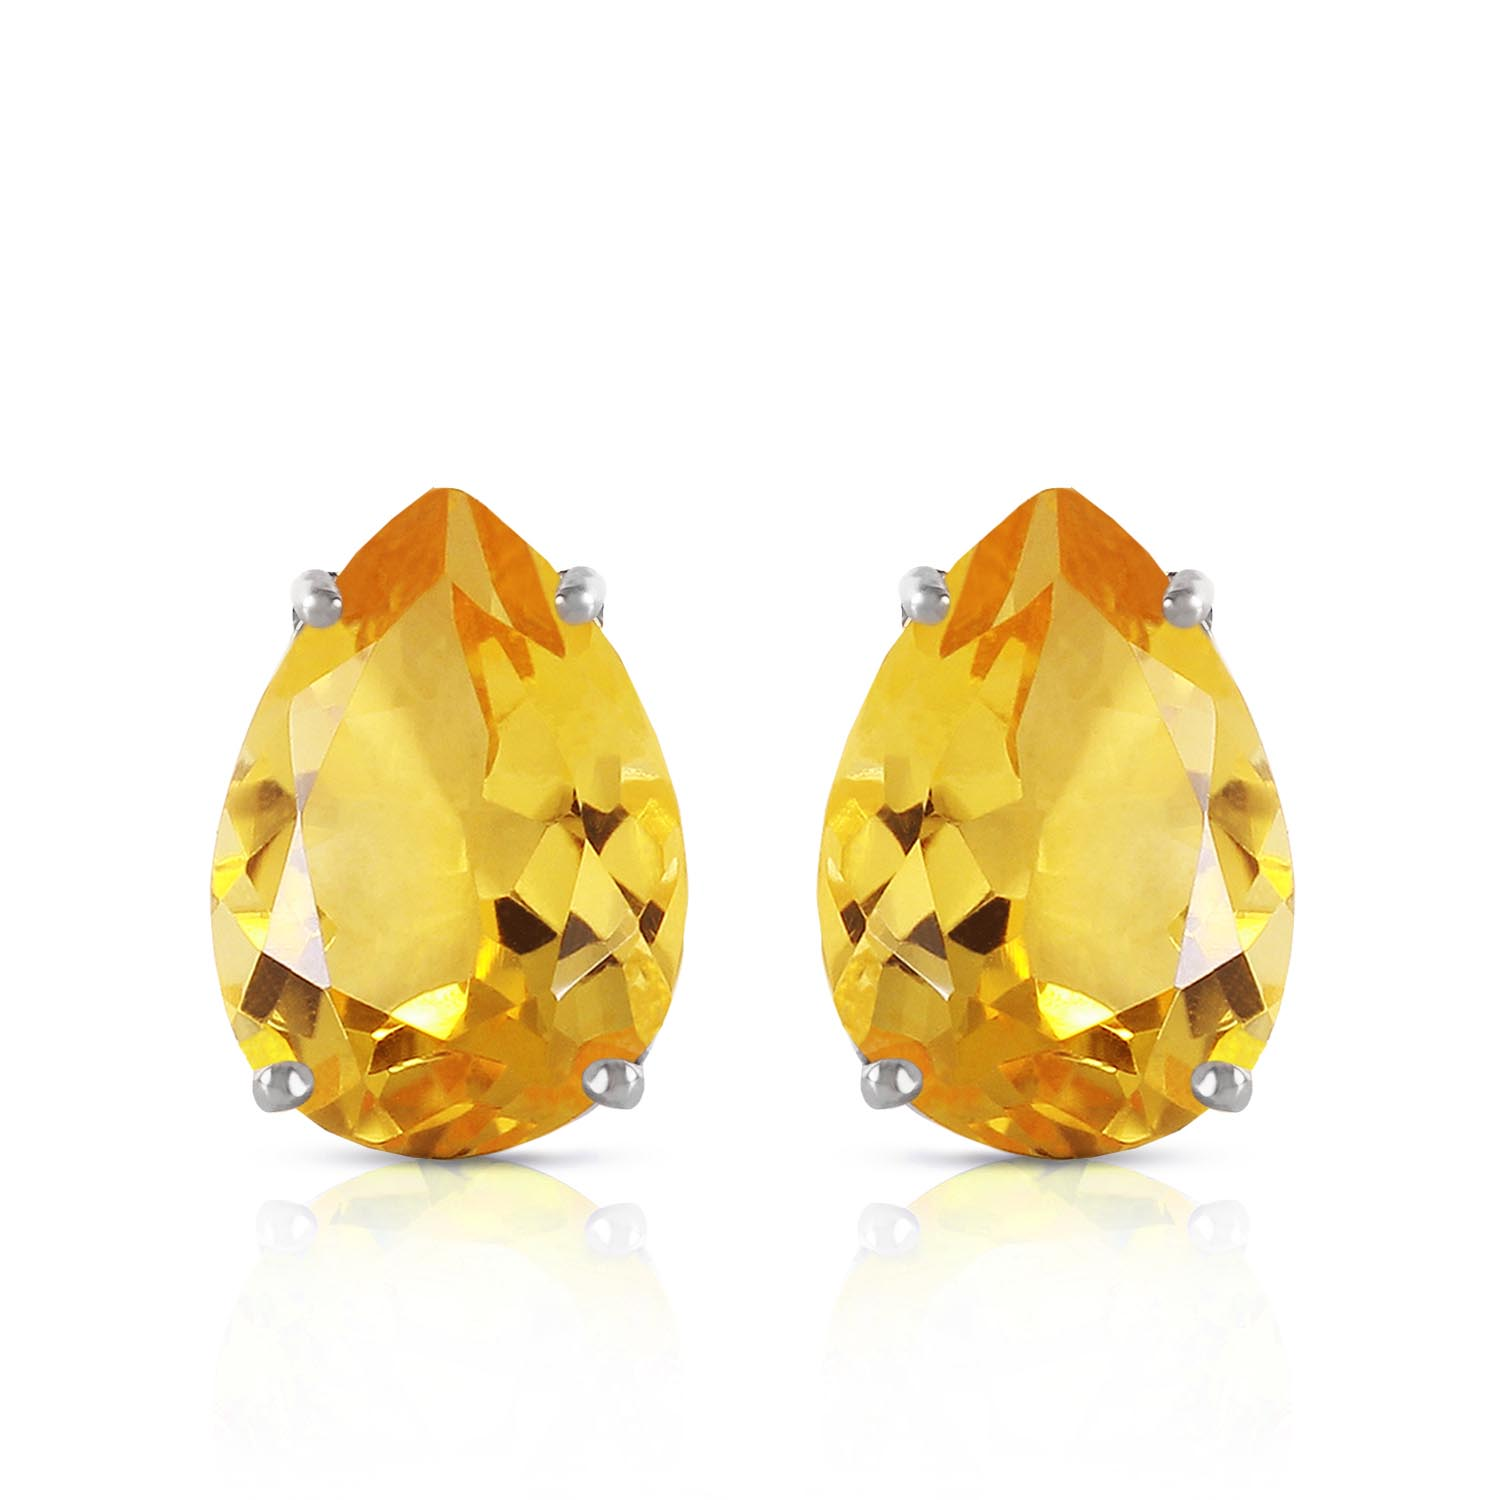 Citrine Droplet Stud Earrings 10.0ctw in 9ct White Gold